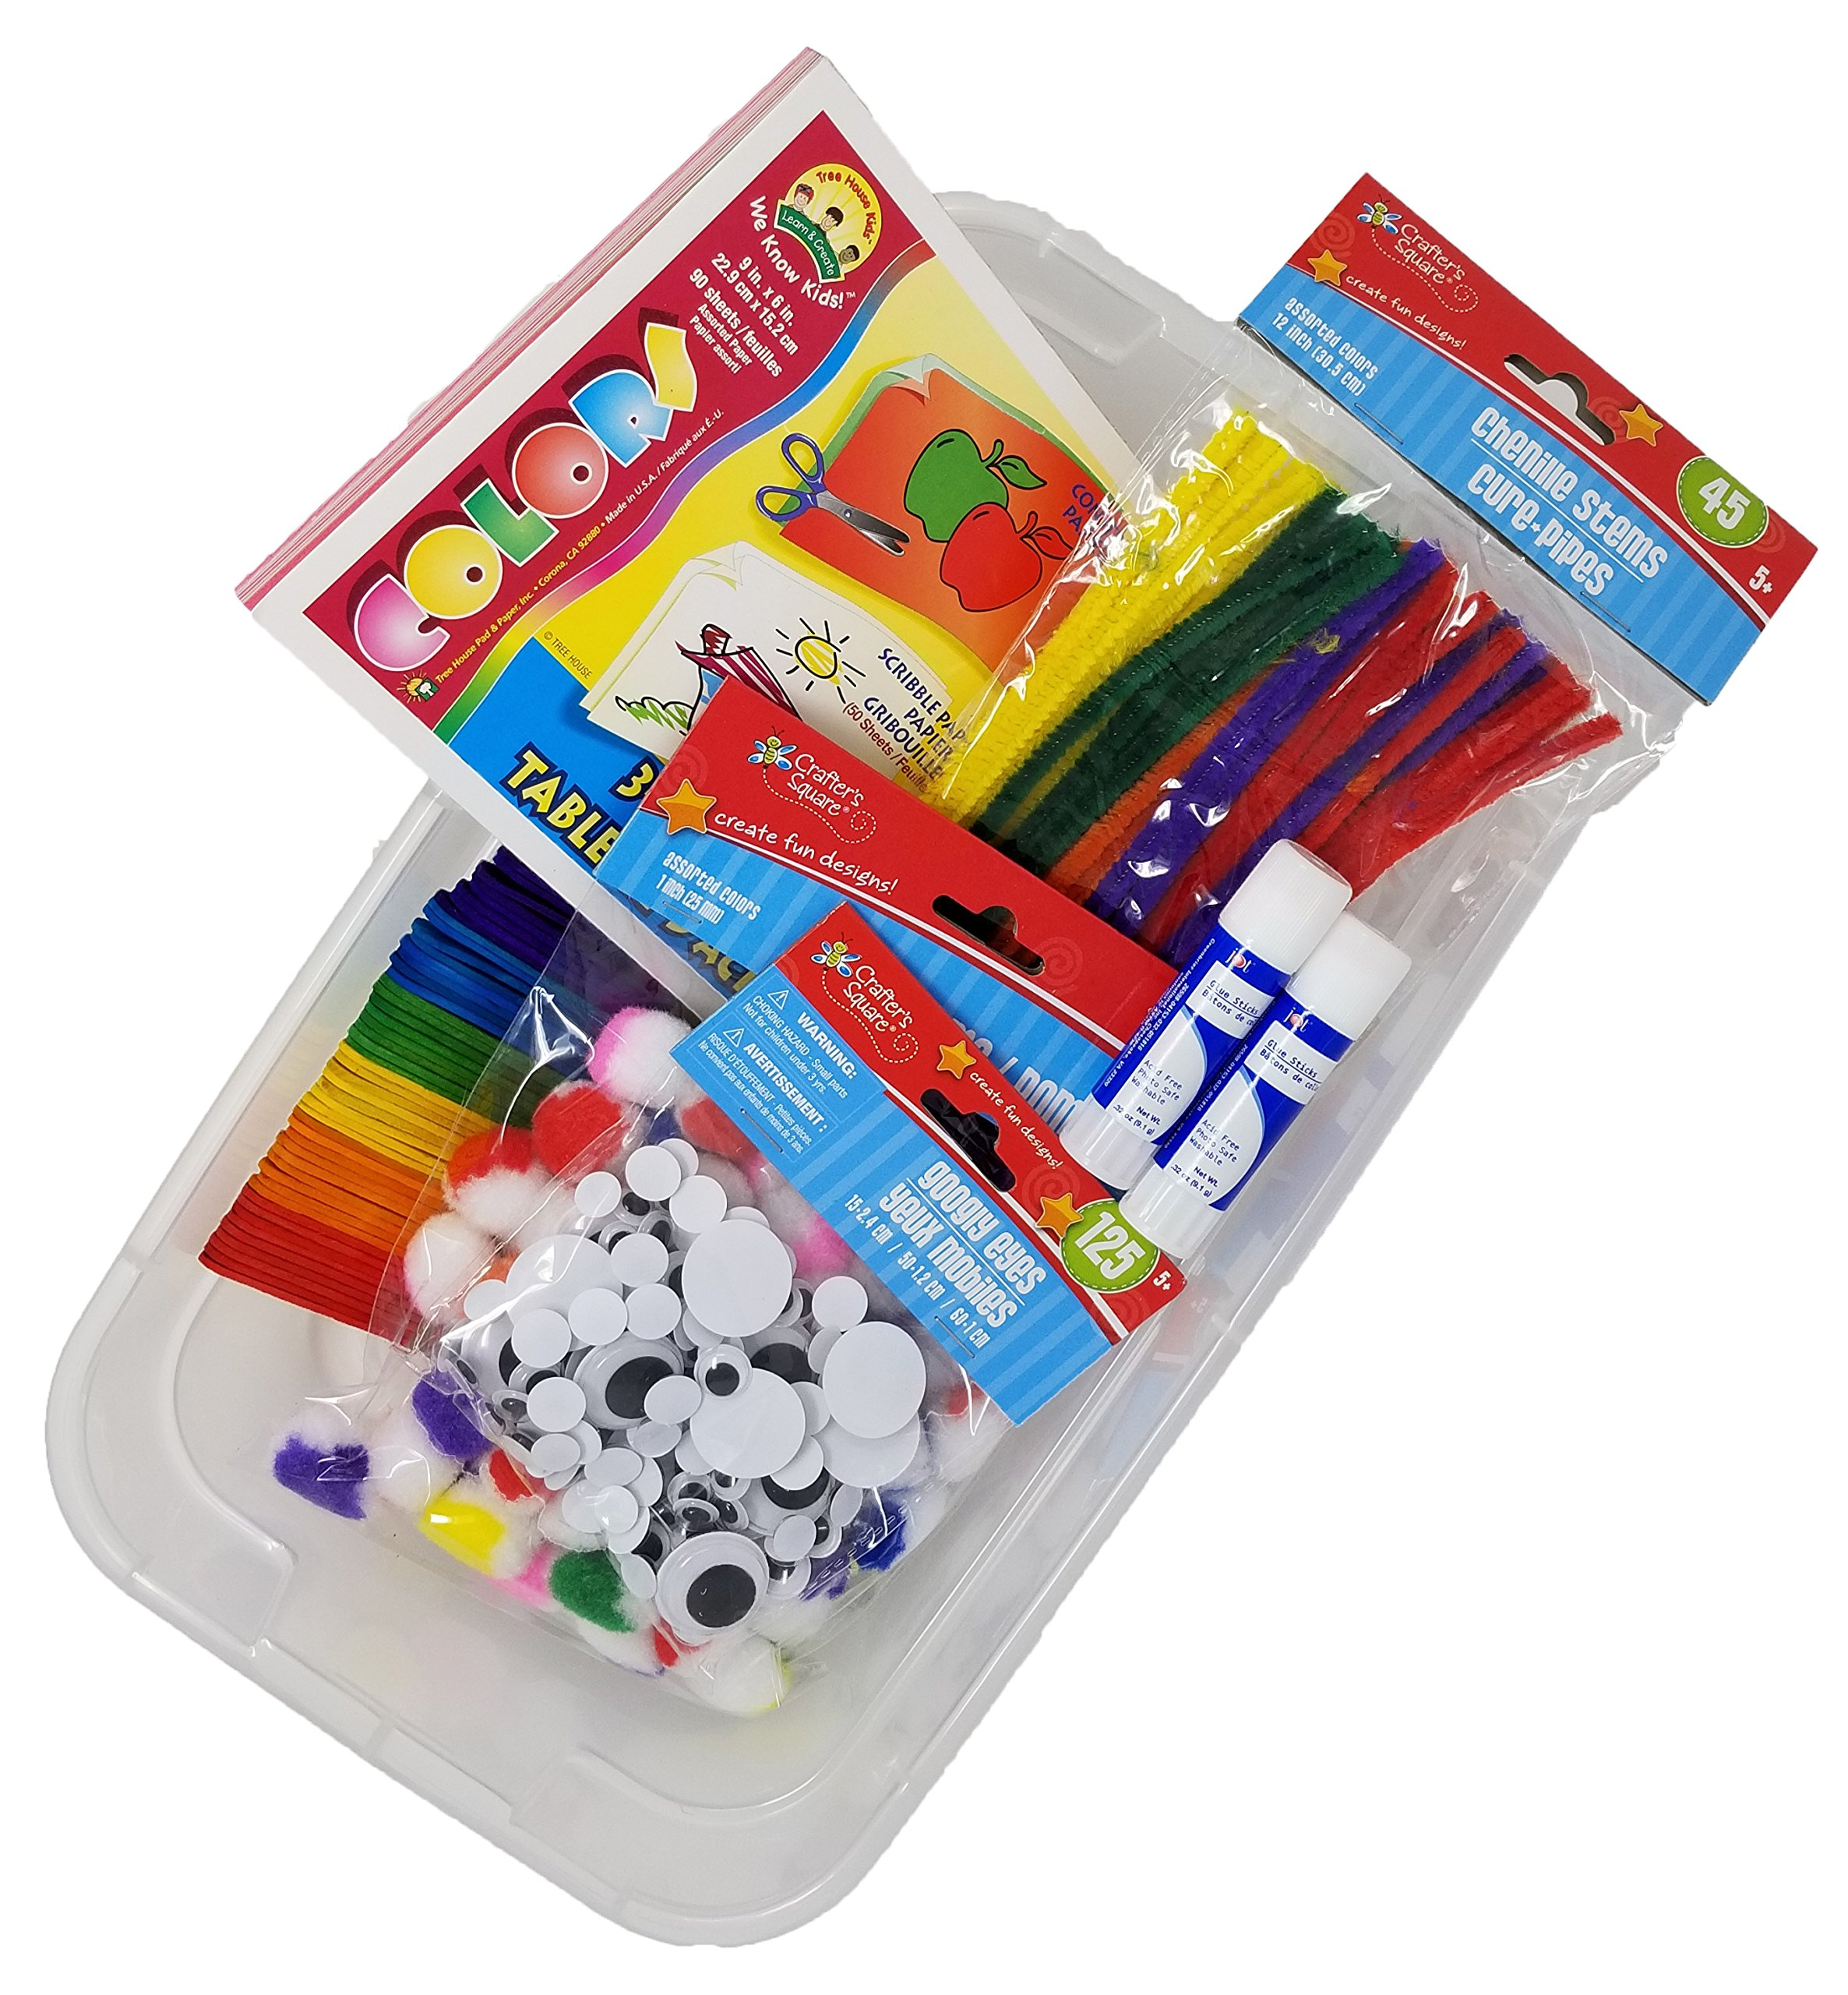 Craft Bin for Kids, Craft Activity Bucket includes Pipe Cleaners, Googly Eyes, Craft Paper, Glue, Pom Poms (varied color schemes), Craft Sticks, Glue and Epic Craft Bin perfect Kids Craft Kit